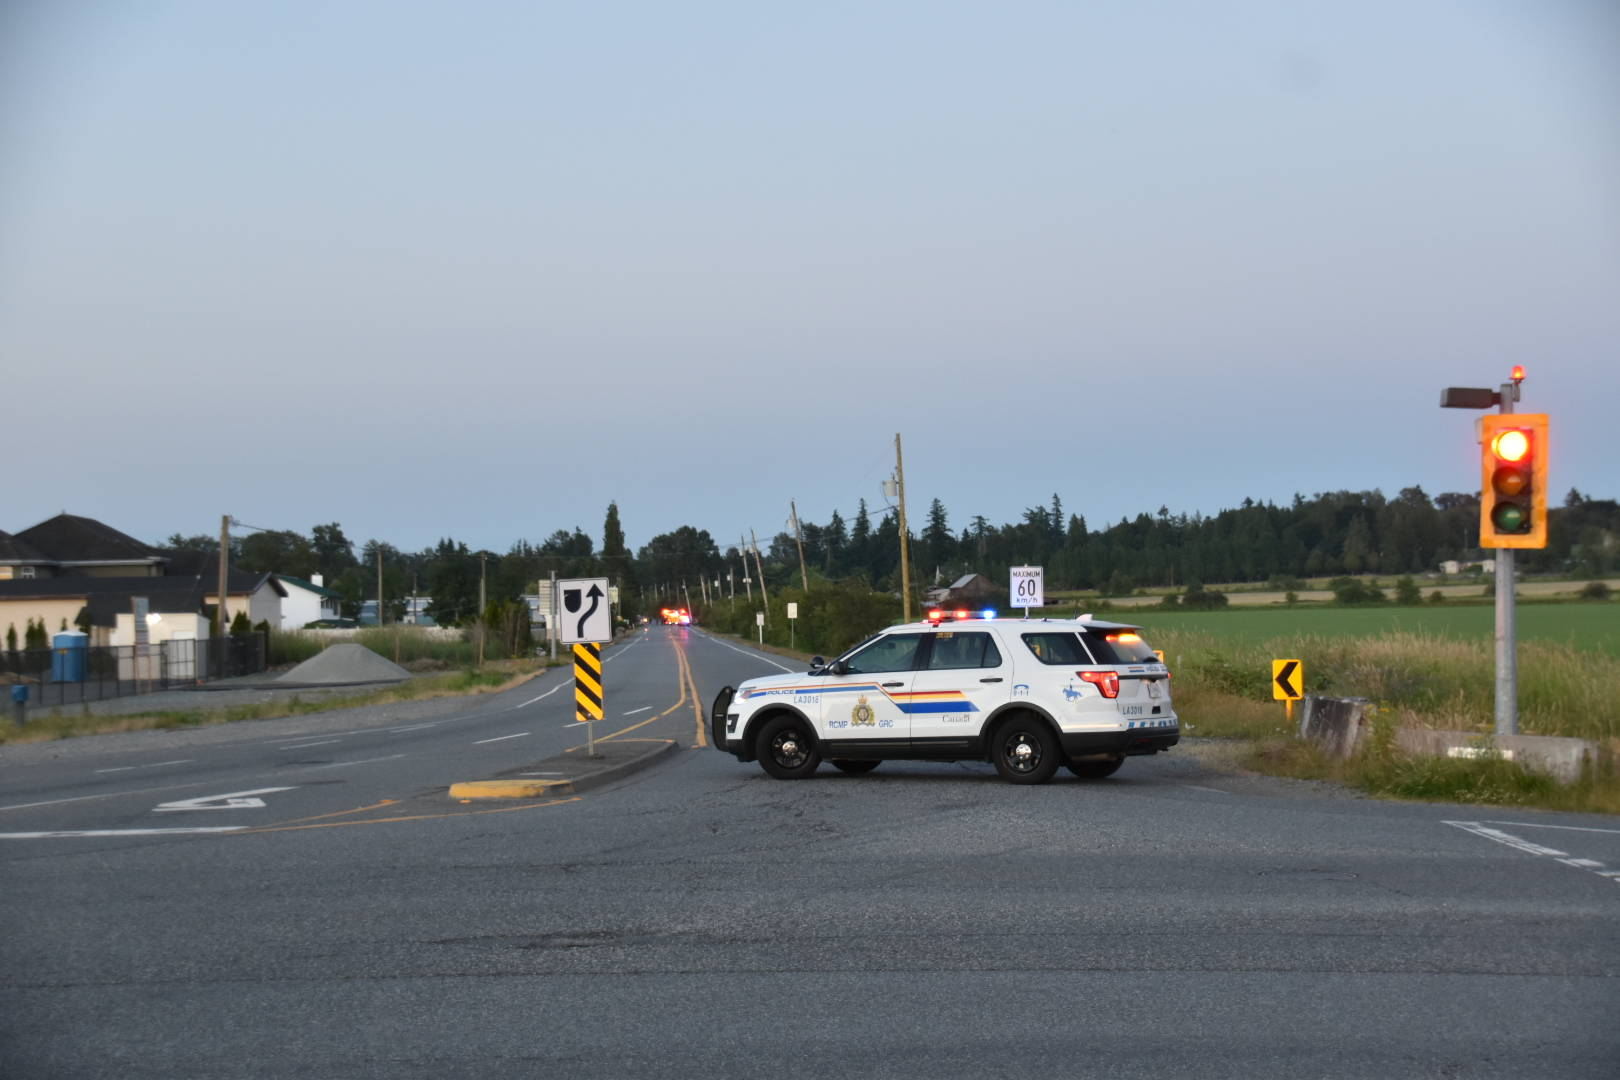 Township of Langley emergency crews responded to a single-vehicle crash in the 21900 block on 56th Avenue in the Murrayville area on June 23, 2021 around 8:45 p.m.. The two occupants in the vehicle were taken to hospital, one of which was a 2-year-old child who were airlifted to BC Children's Hospital. (Curtis Kreklau/Special to Langley Advance Times)